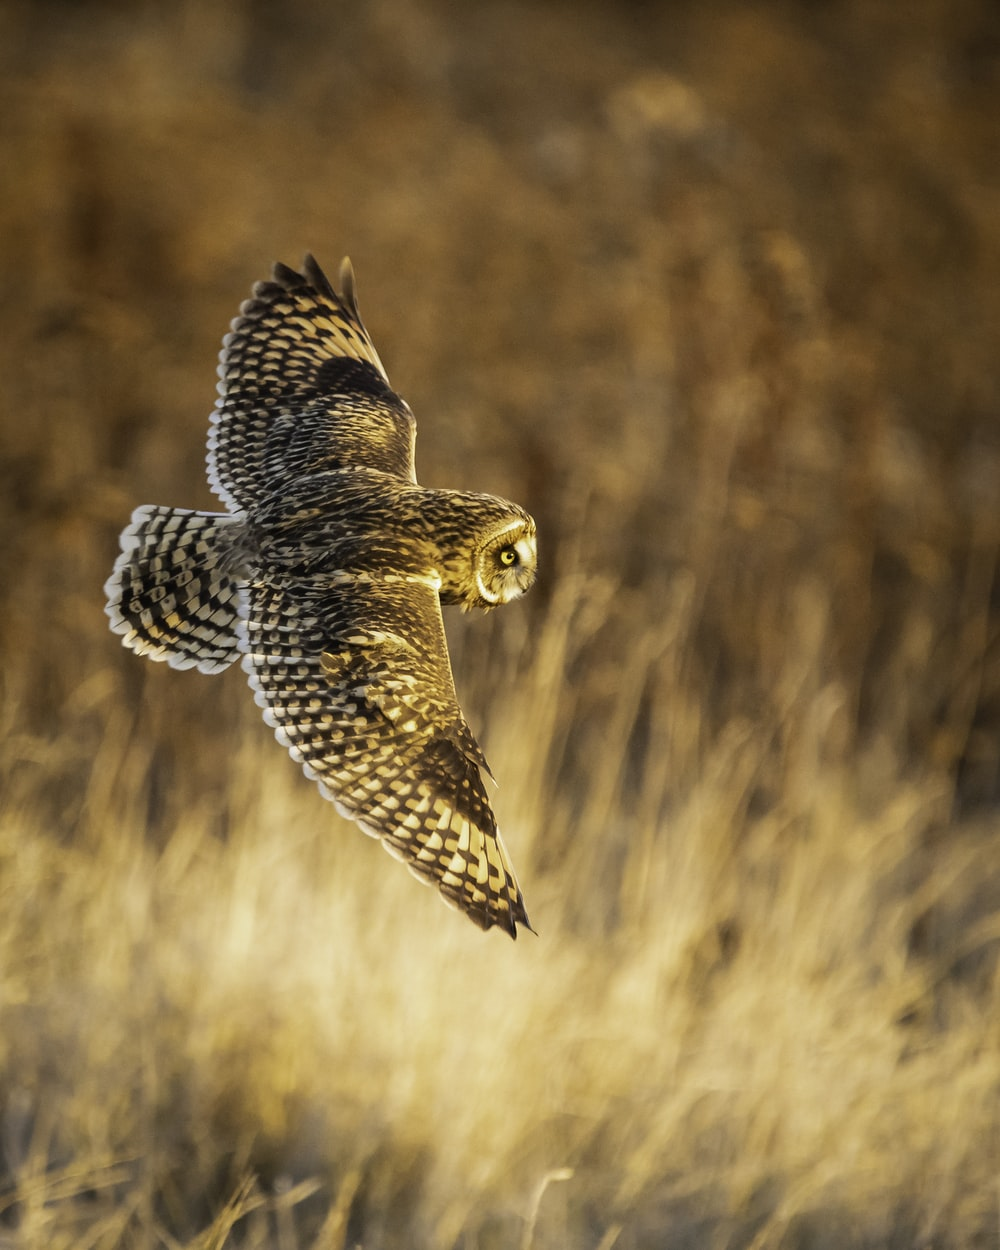 brown and black owl flying during daytime